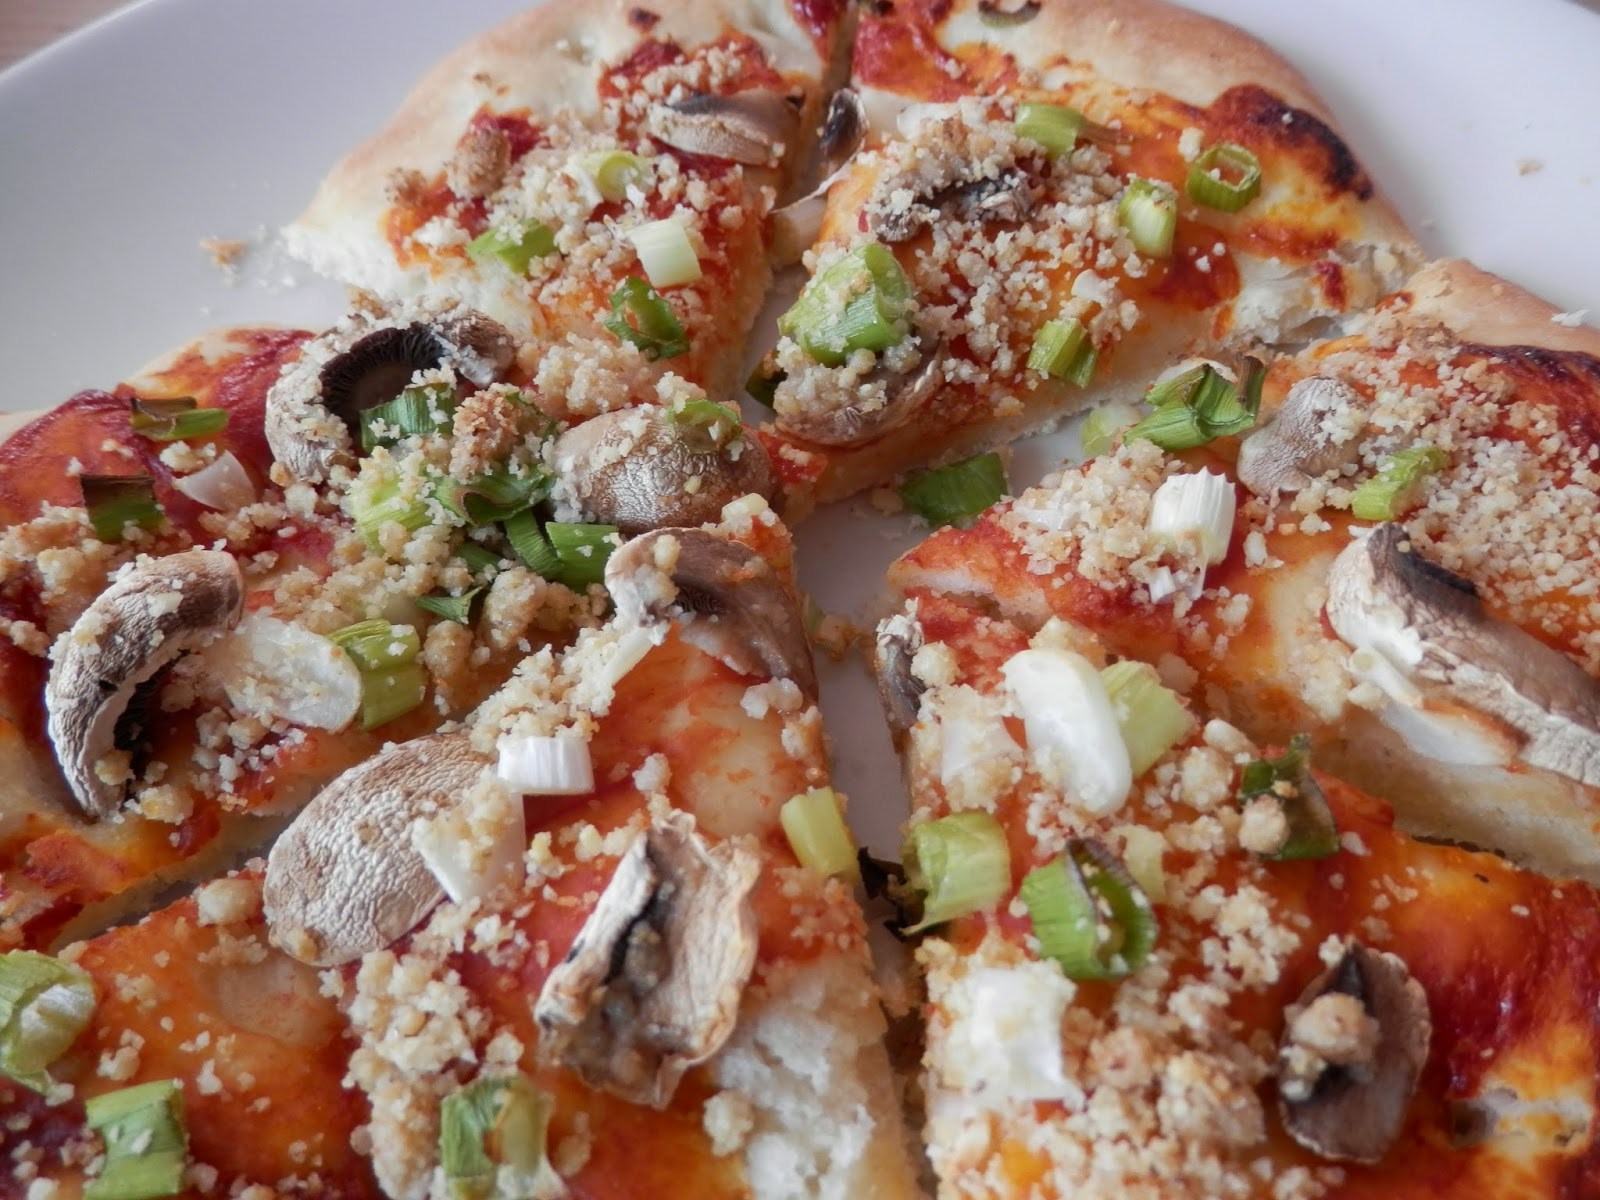 What do vegans eat? vegan mushroom pizza secondhandsusie.blogspot.co.uk